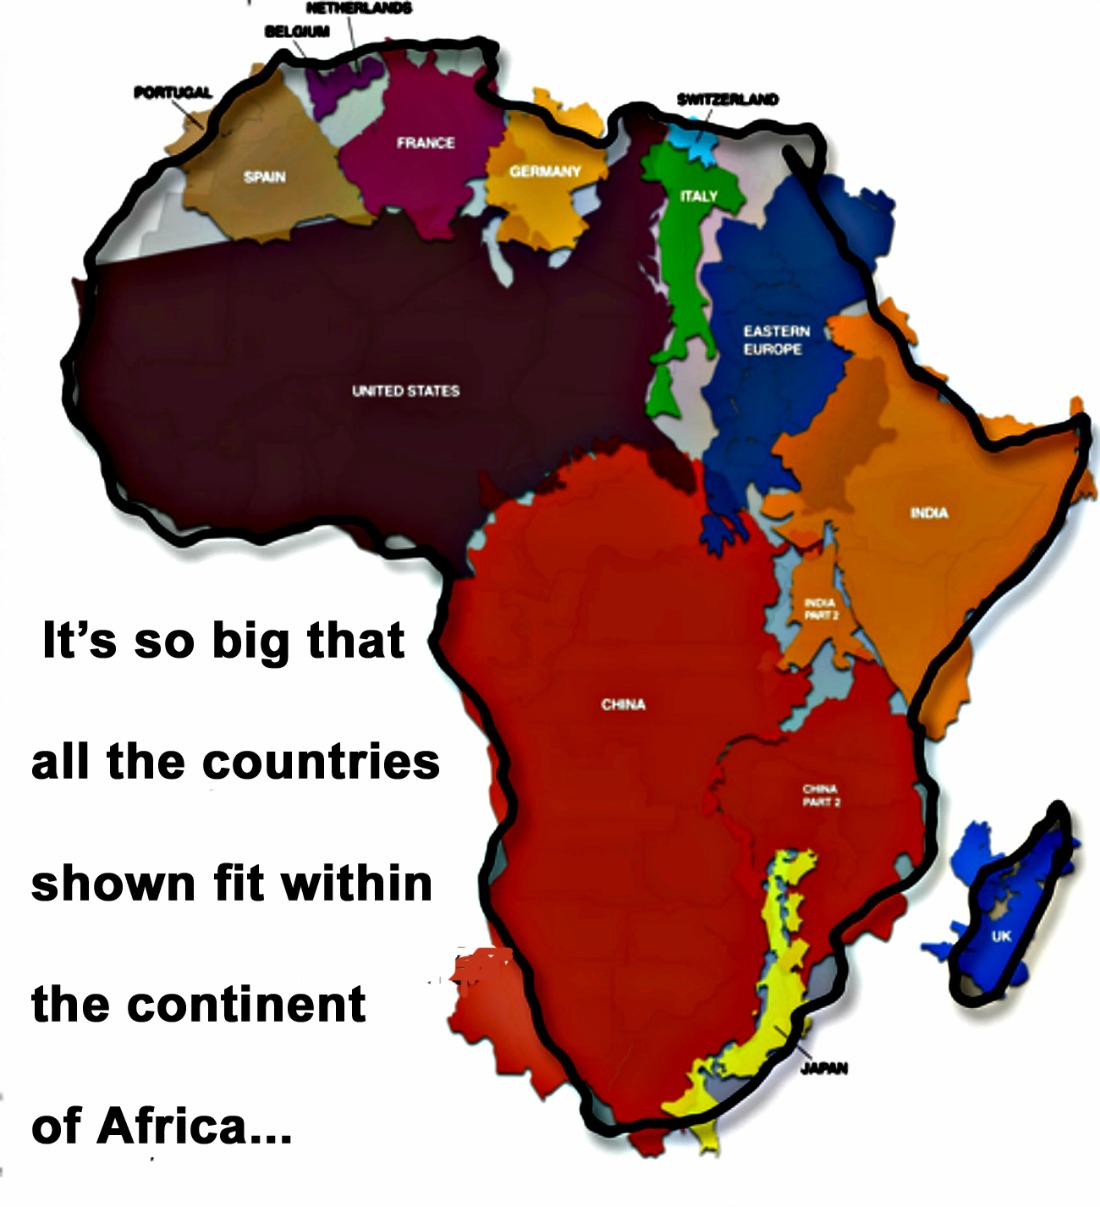 True Size of Africa | The Continent of Africa | Pinterest ...